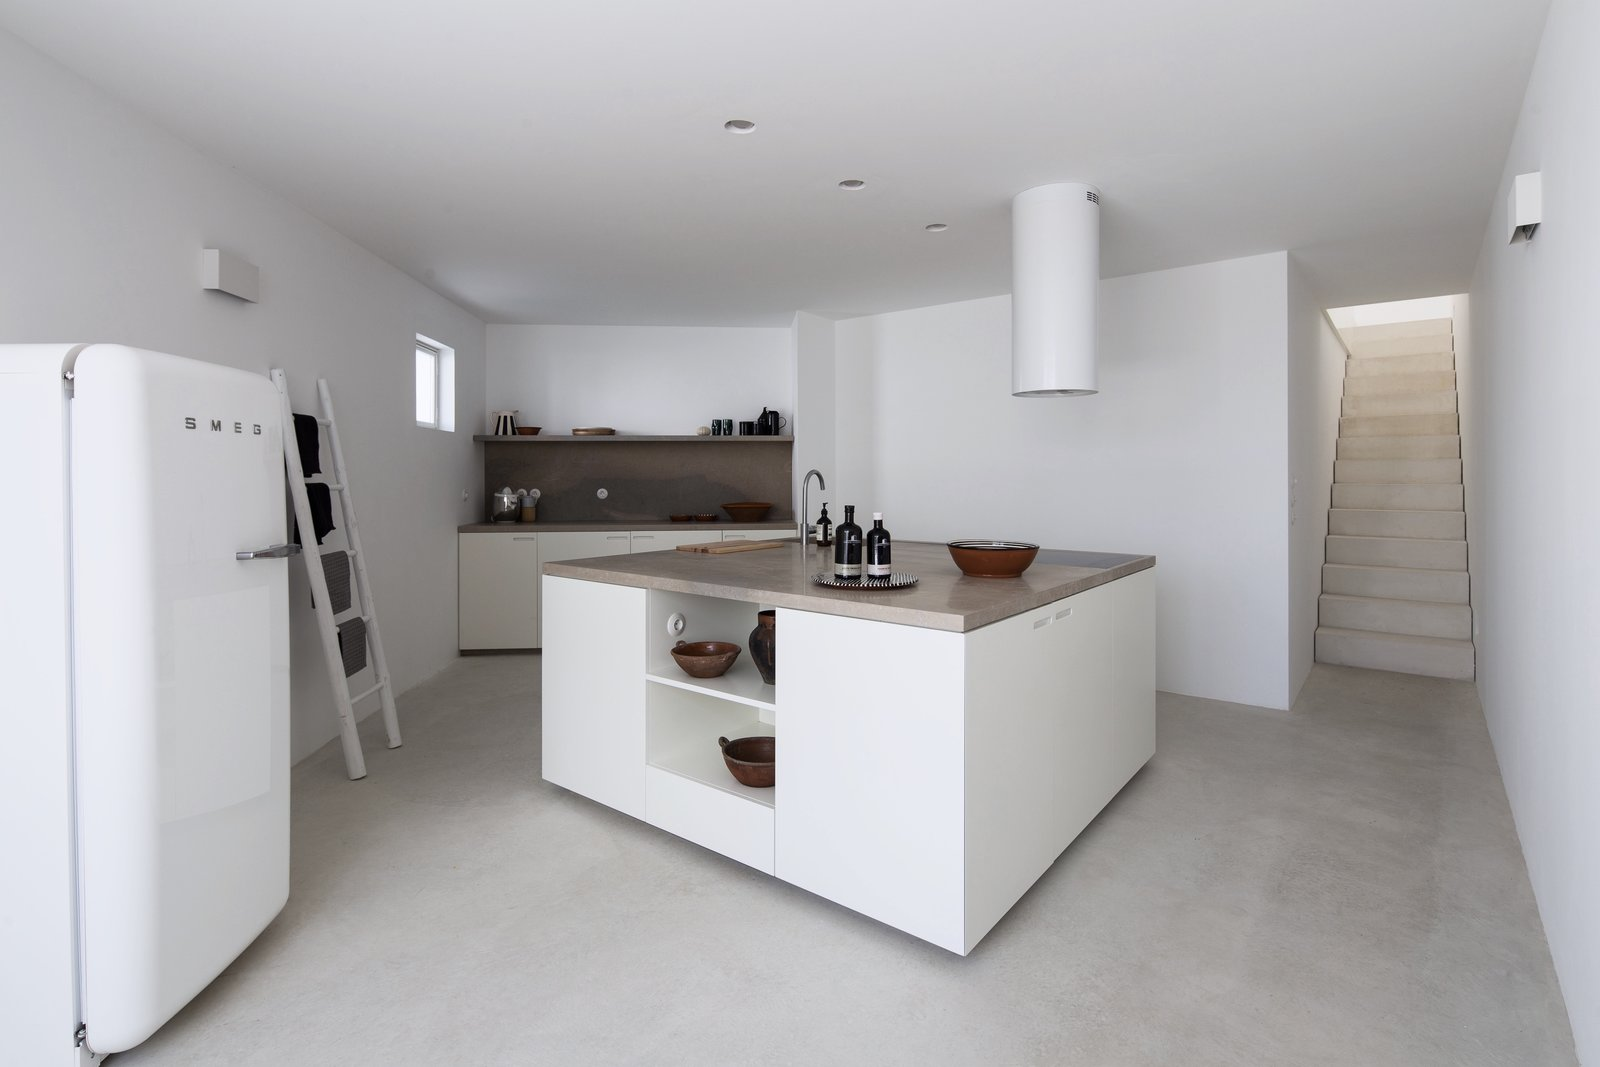 Kitchen, Refrigerator, Concrete, Recessed, Stone, Cooktops, White, Wall, and Range Hood The kitchen features a large central island with natural stone countertops and a stylish SMEG refrigerator.  Best Kitchen Wall Recessed Photos from Book This Idyllic Portuguese Home For Your Next Escape